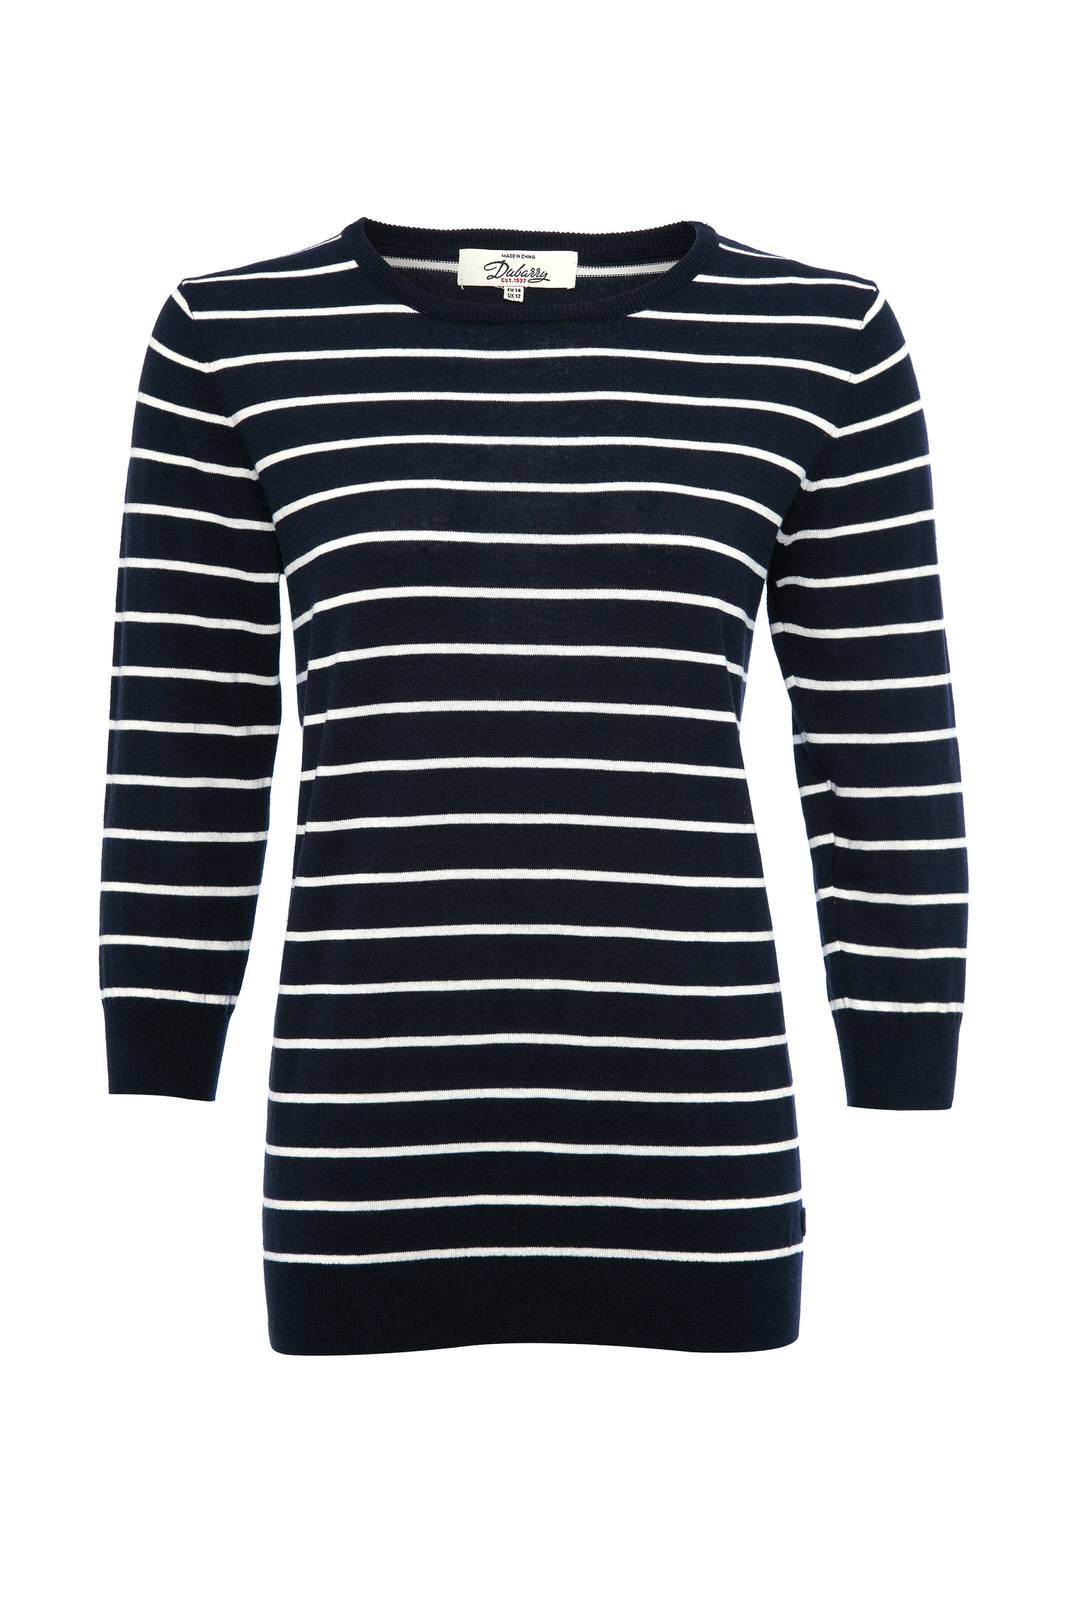 Howth jumper - Navy